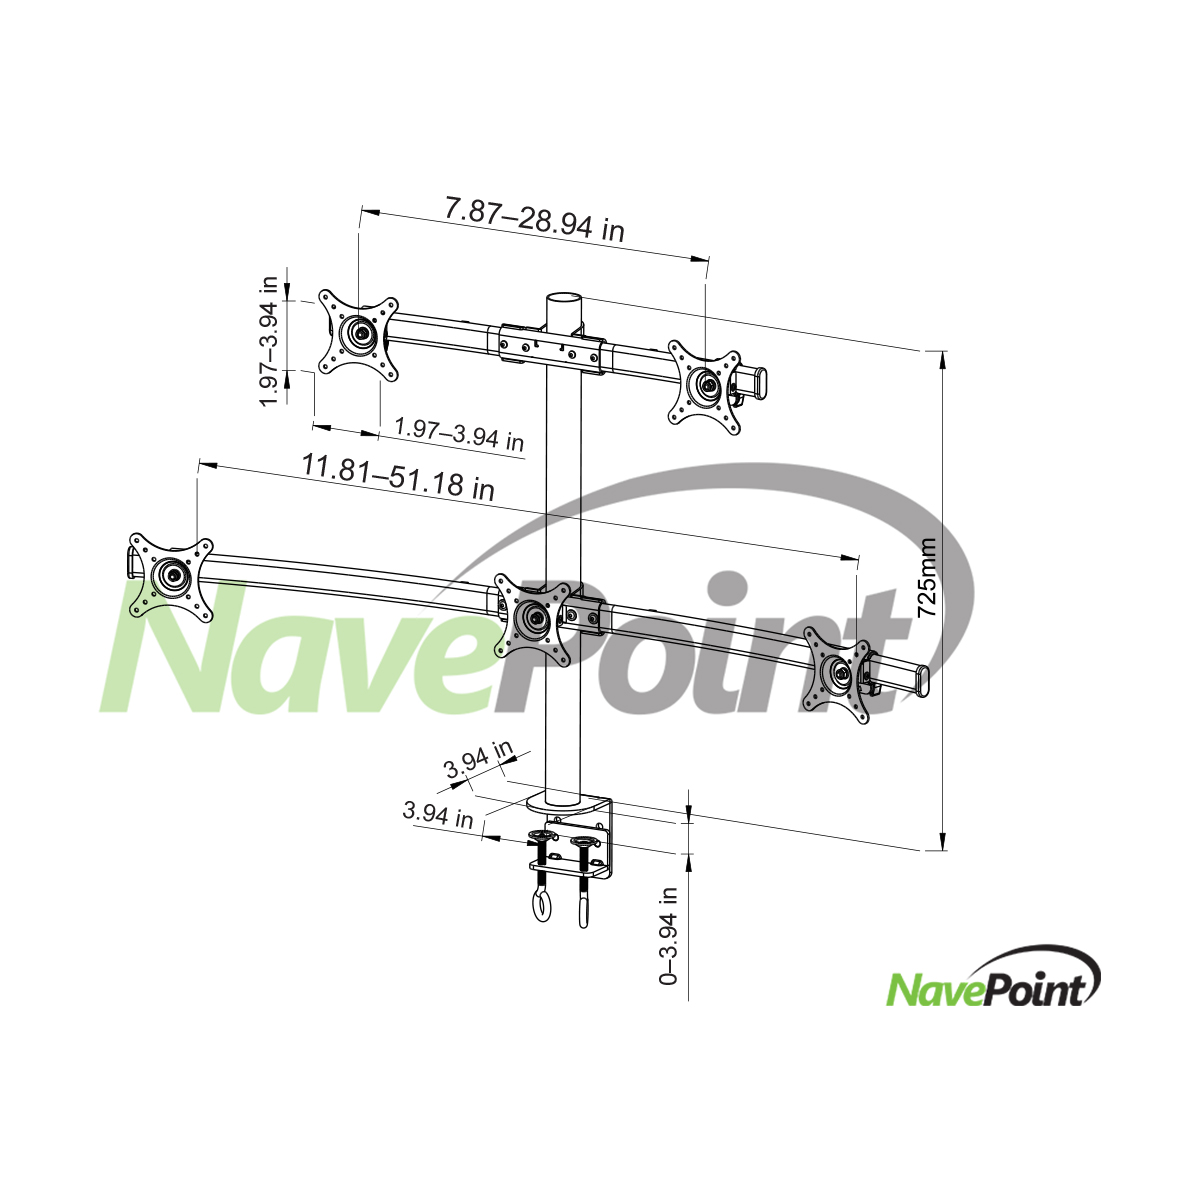 00402225_3 Wiring Diagram For Rj45 Plug 11 On Wiring Diagram For Rj45 Plug